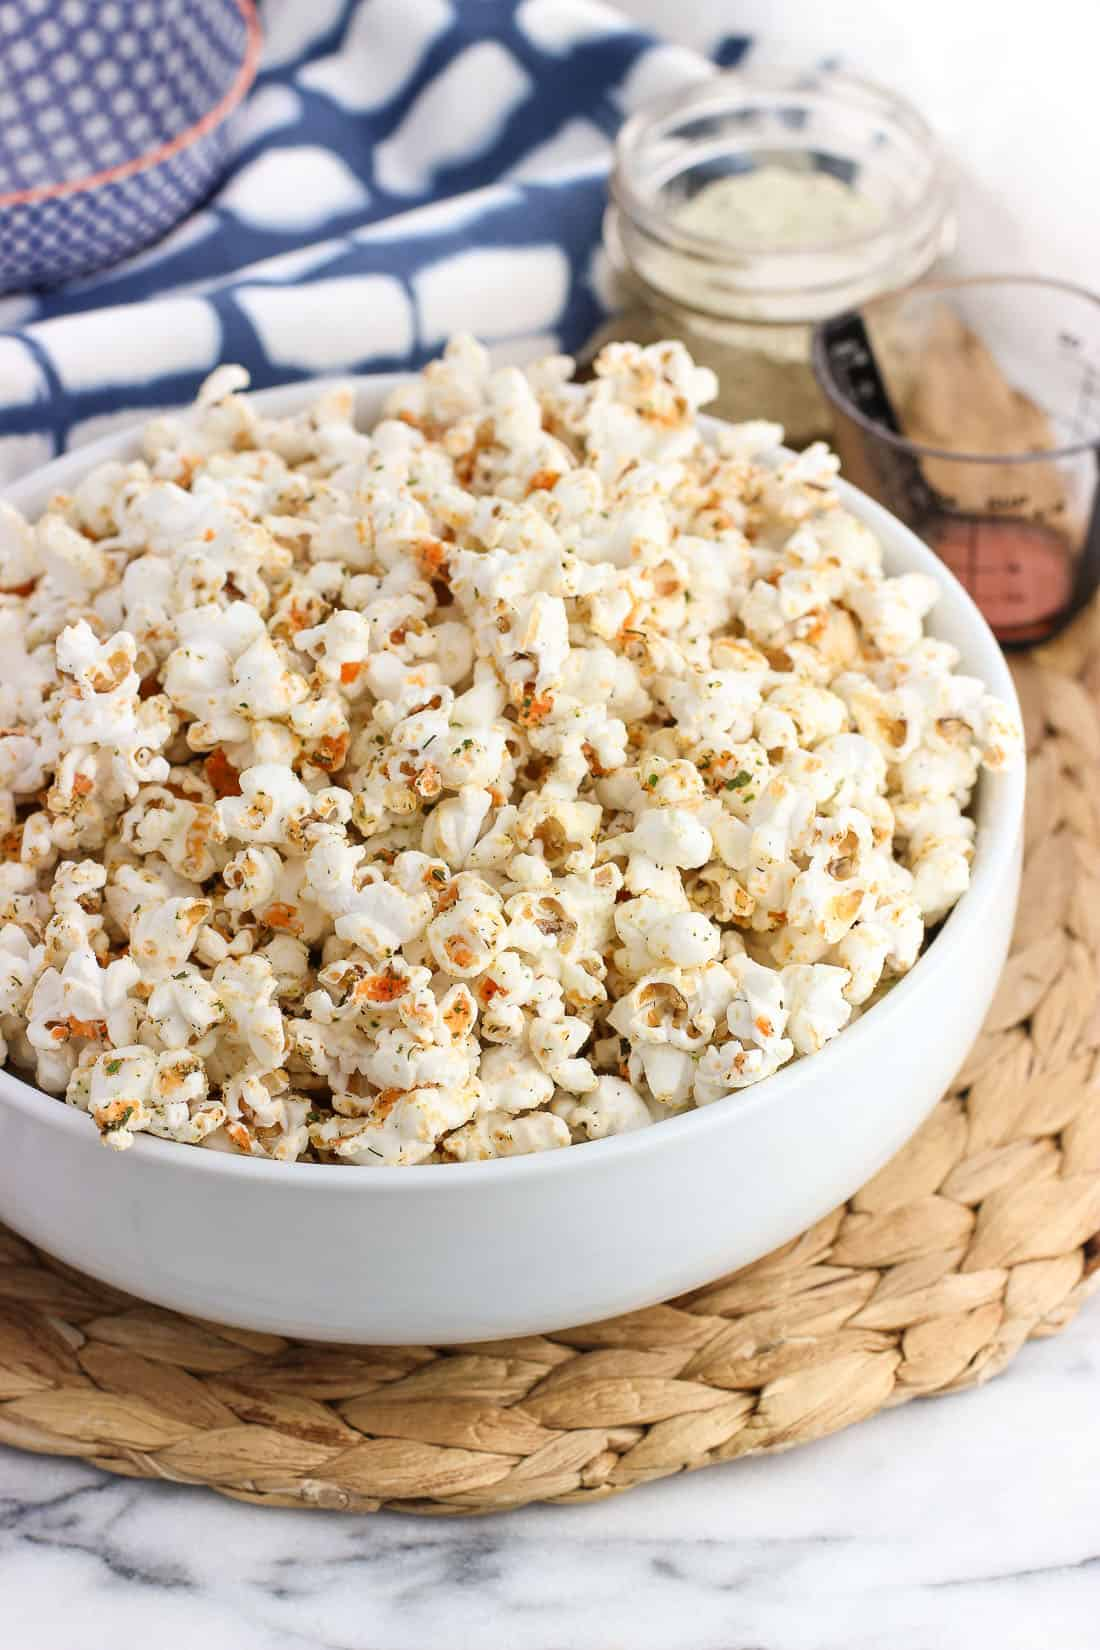 Buffalo ranch popcorn is made right on the stovetop in no time, making this a quick and healthy snack recipe! It's popped in coconut oil and easily flavored with ranch seasoning for zippy flavored popcorn that isn't greasy at all.